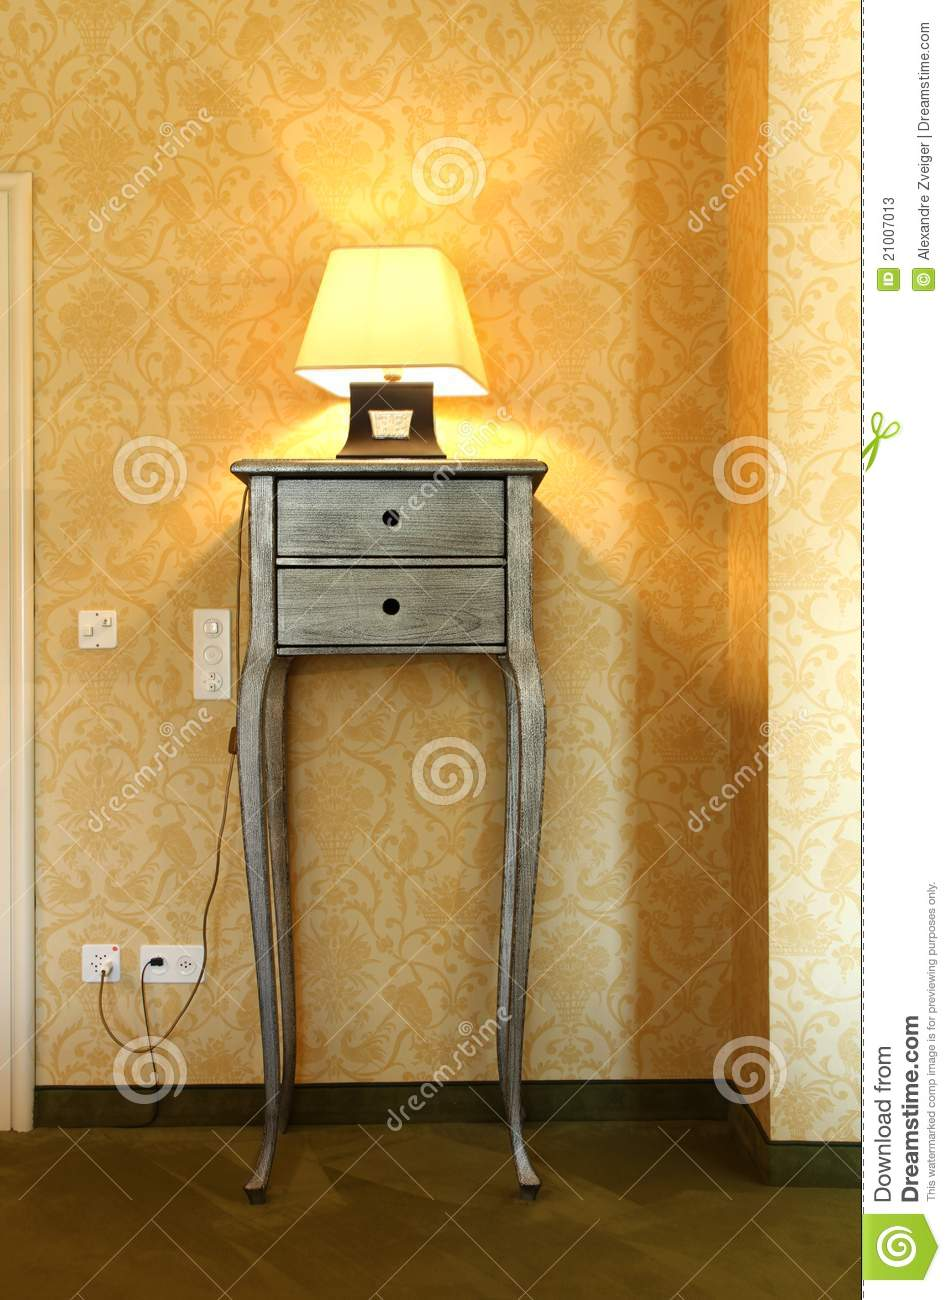 Table and lamp stock image image of wide suite hotel 21007013 royalty free stock photo download table and lamp geotapseo Choice Image